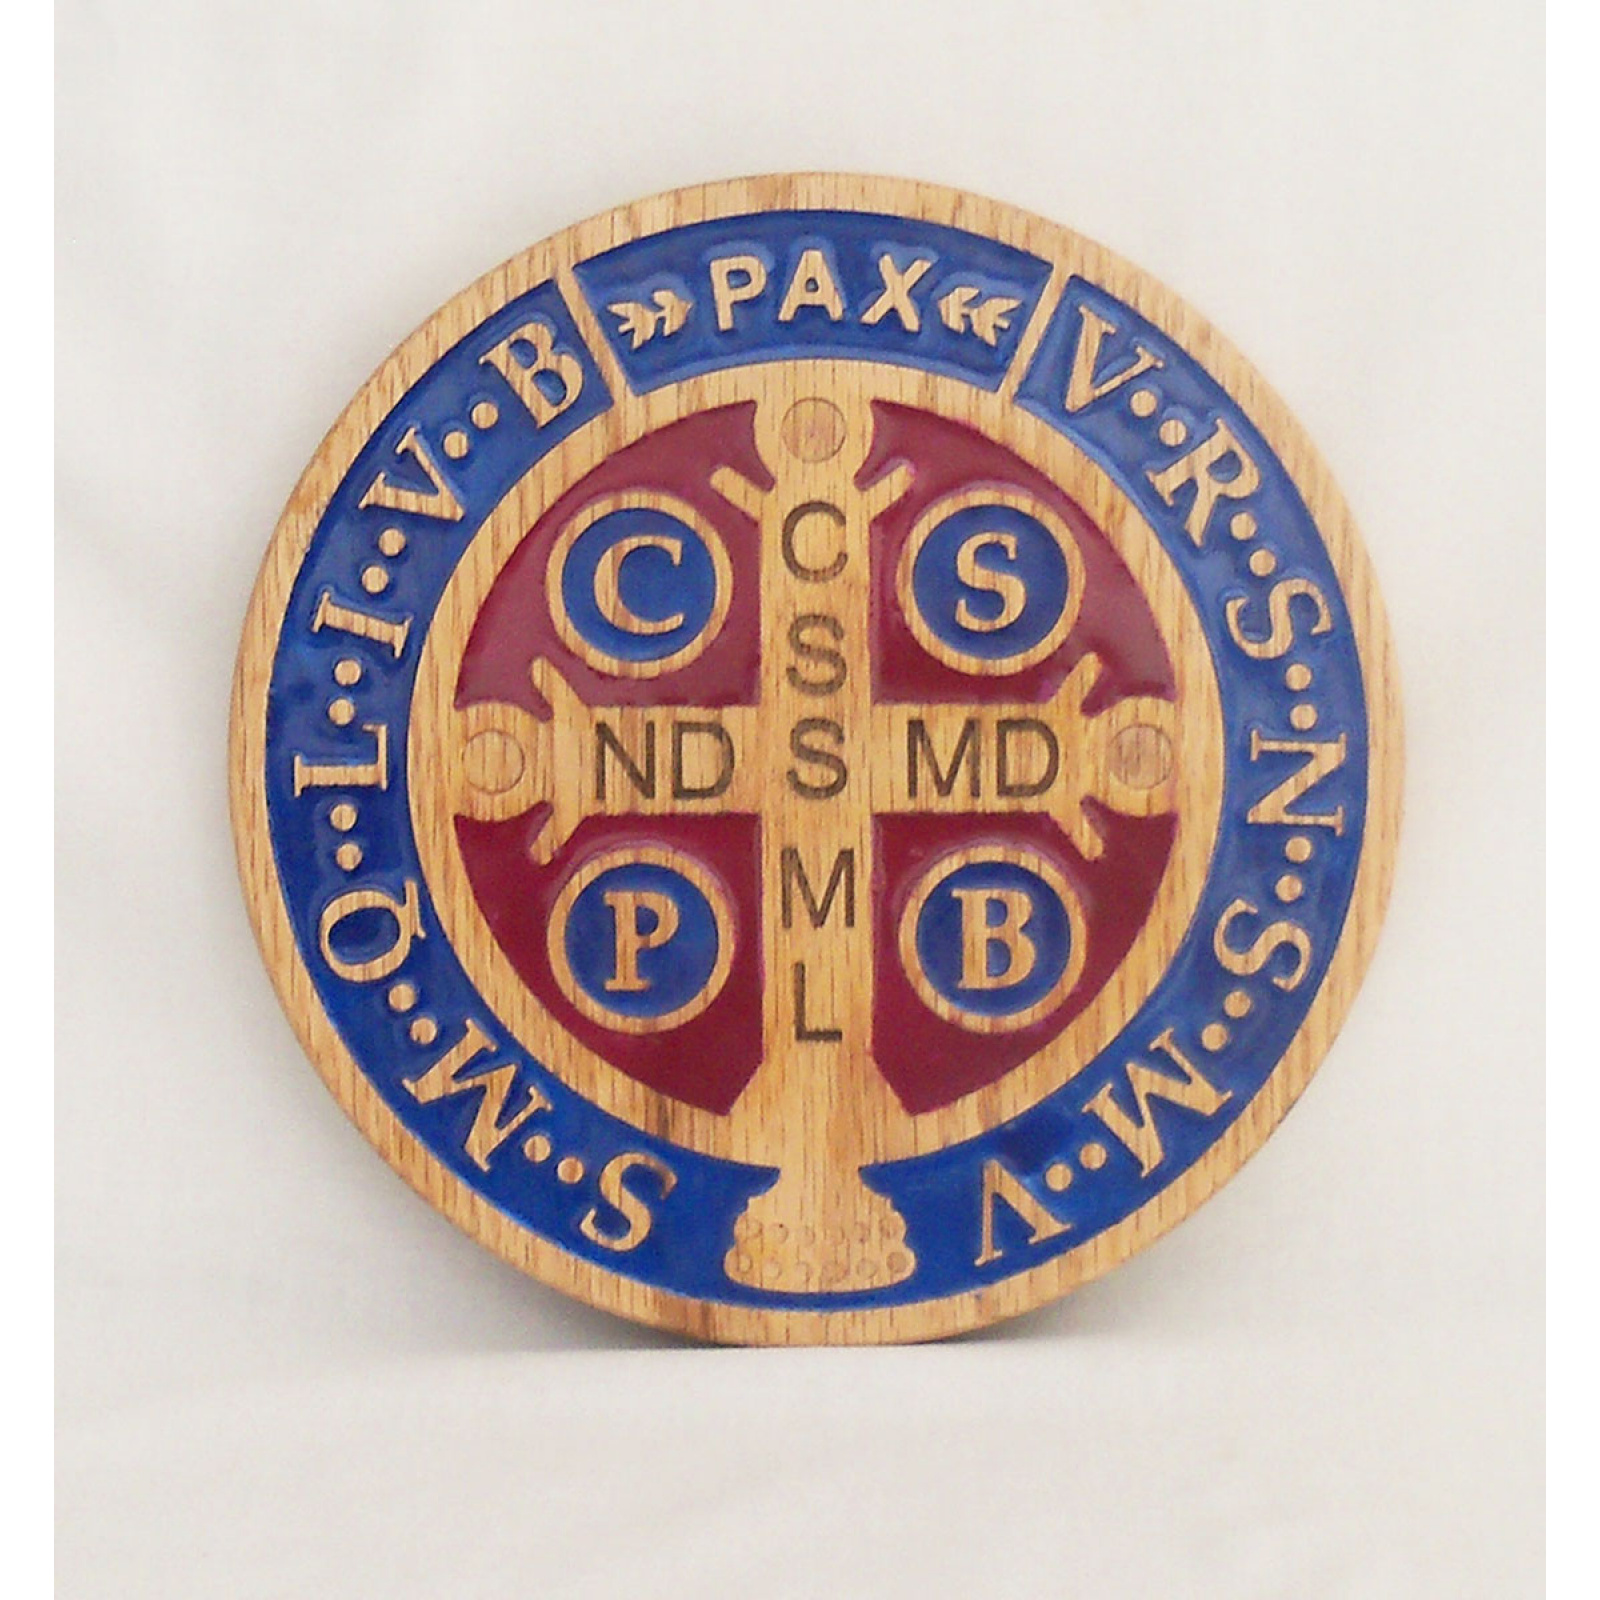 Wooden St Benedict medal